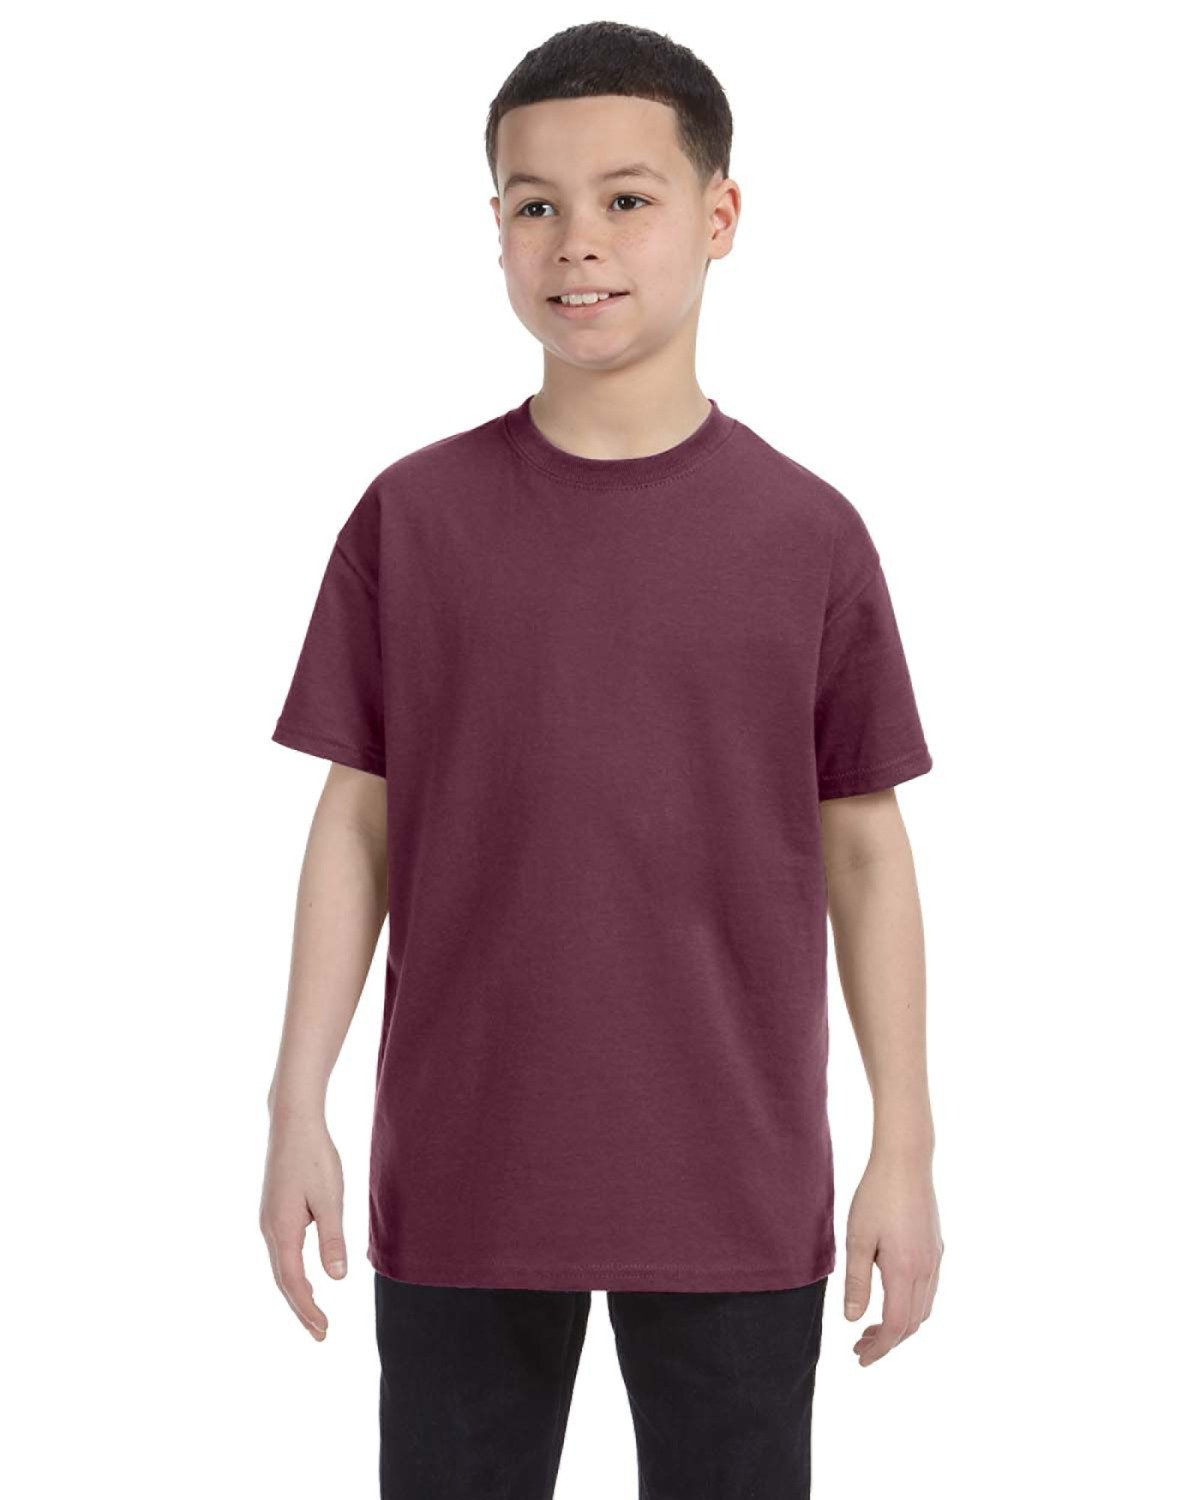 Jerzees Youth DRI-POWER® ACTIVE T-Shirt VINT HTH MAROON